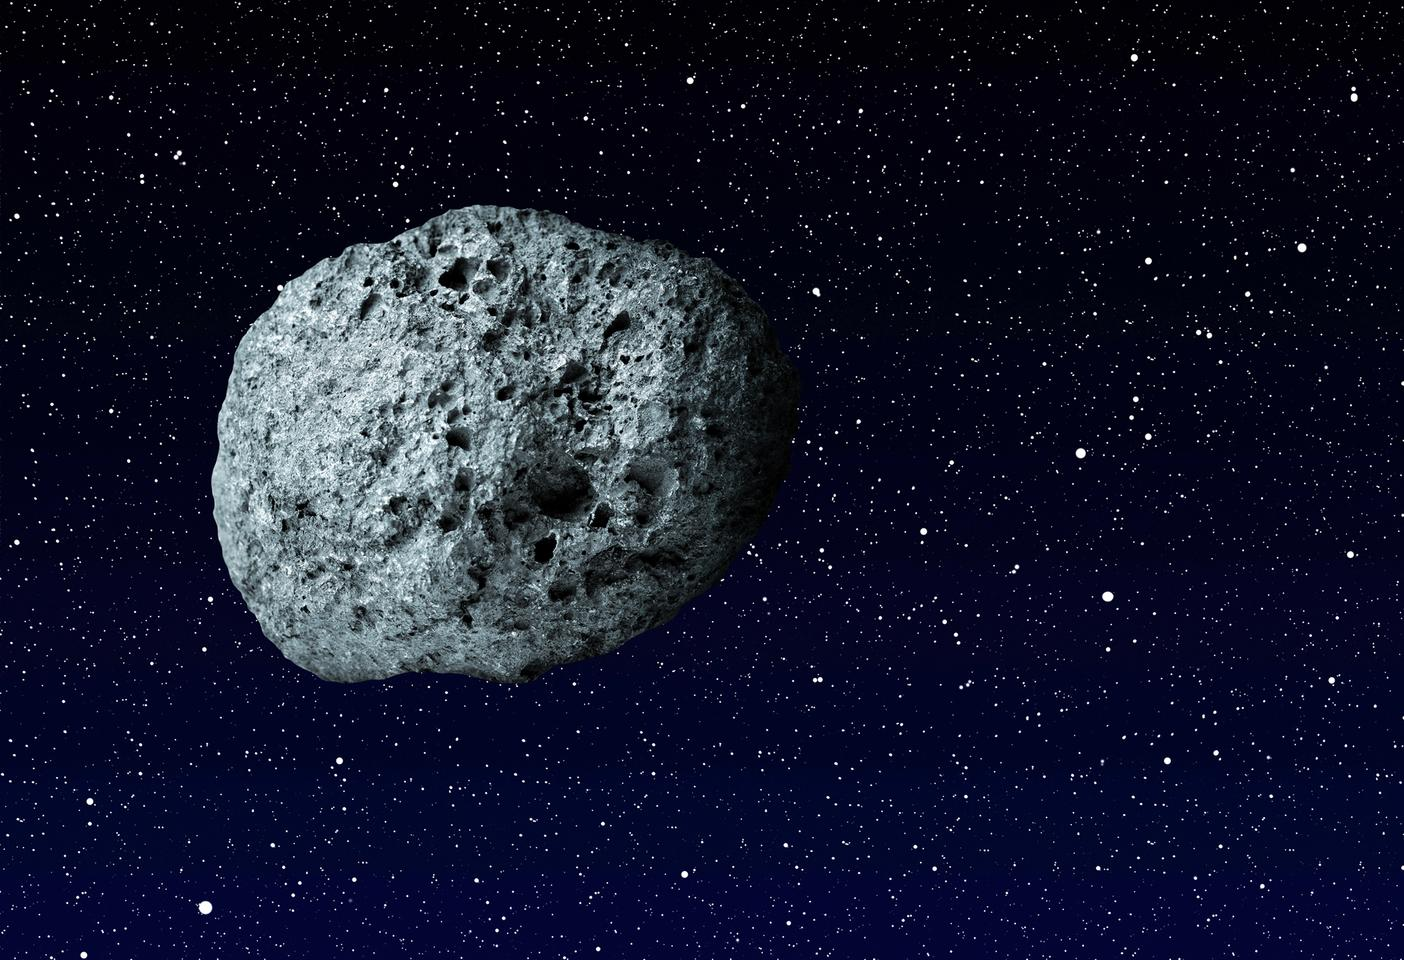 Astronomers have calculated the origins of asteroids called Centaurs